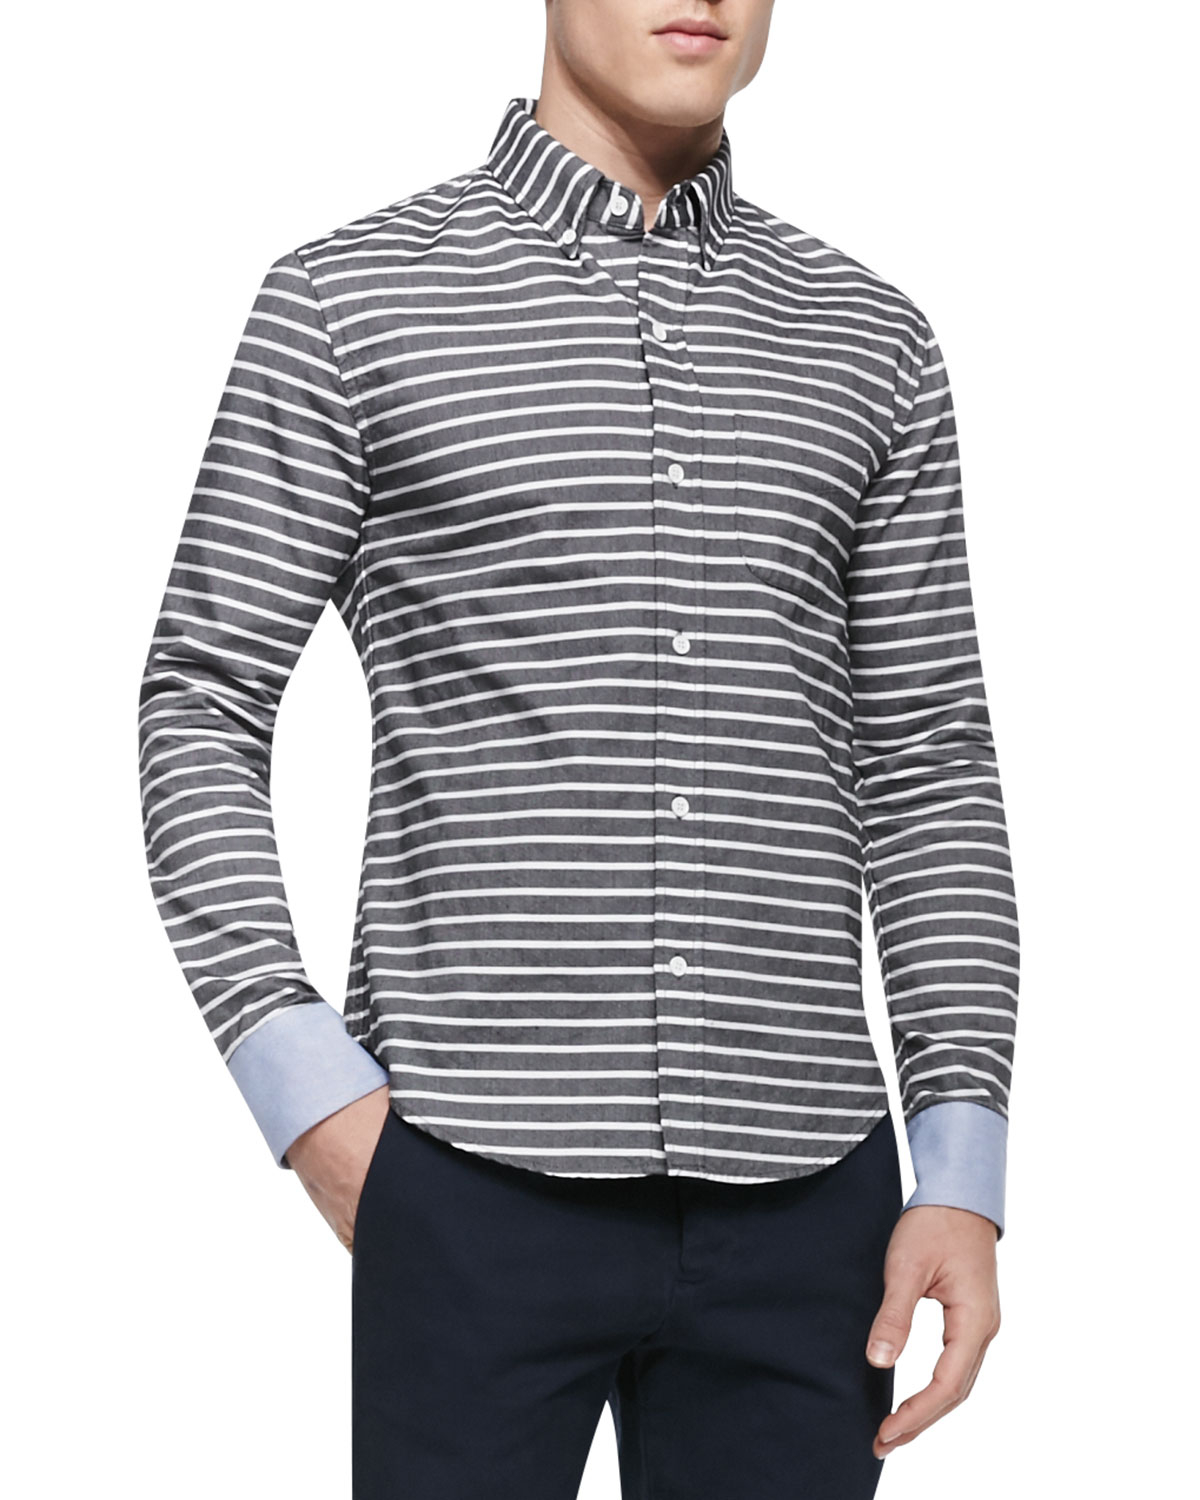 Band of outsiders horizontal stripe button down shirt in for Horizontal striped dress shirts men